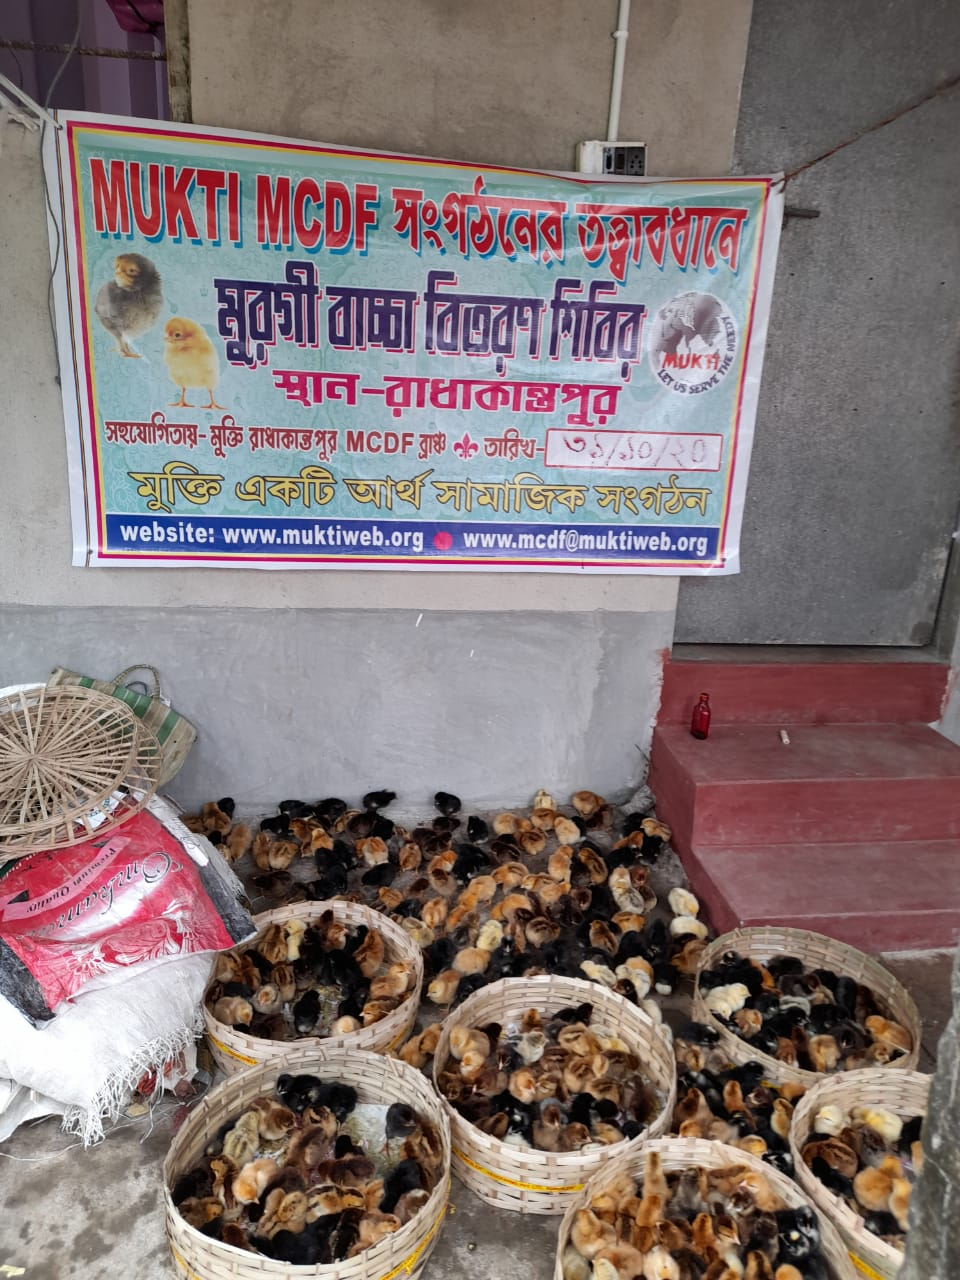 Mukti Distributed Chicks To The Mcdf Members Of Radhakantapu...